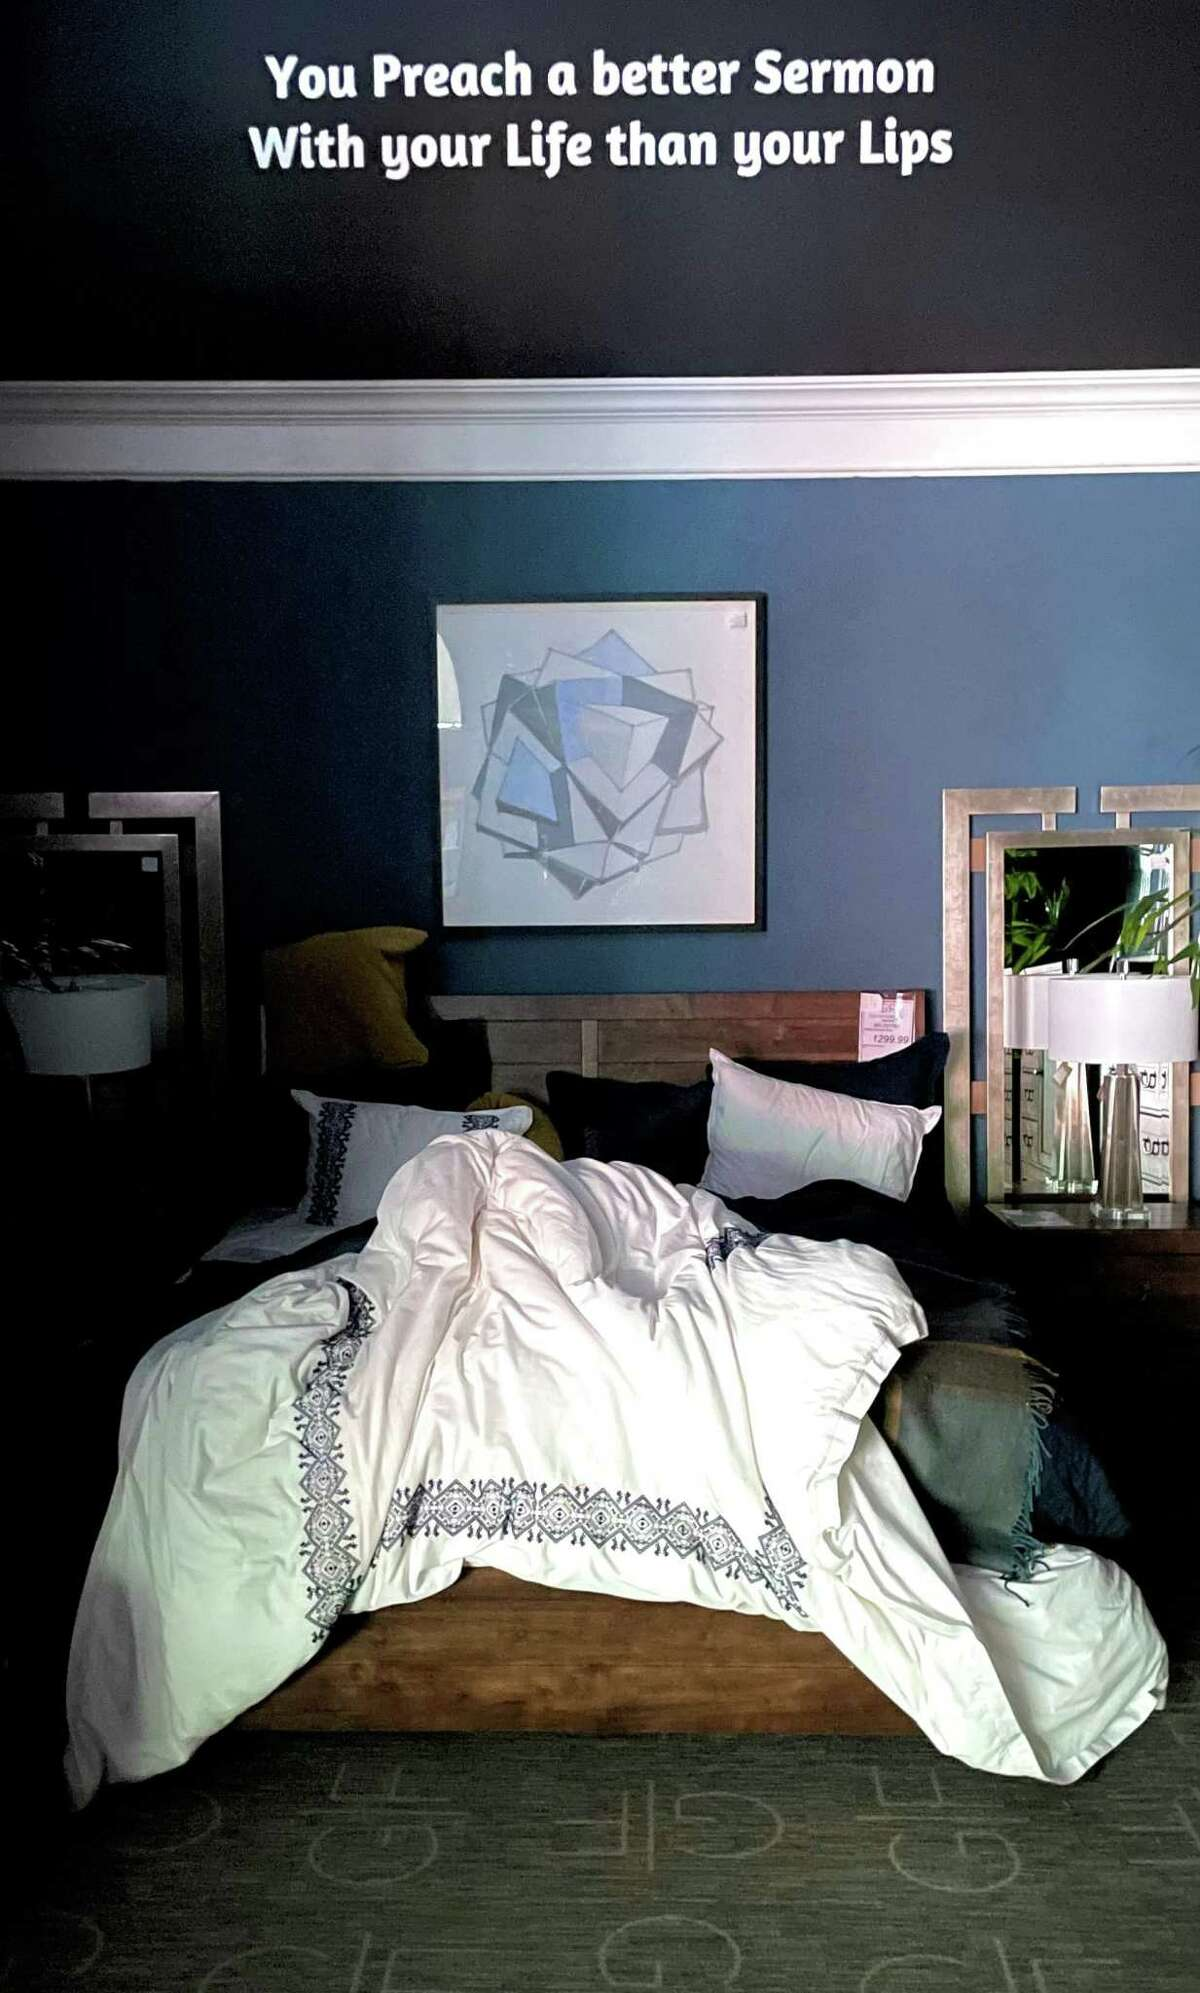 A person sleeps in one of Gallery Furniture's beds during the storm on Wednesday, Feb. 17, 2021.